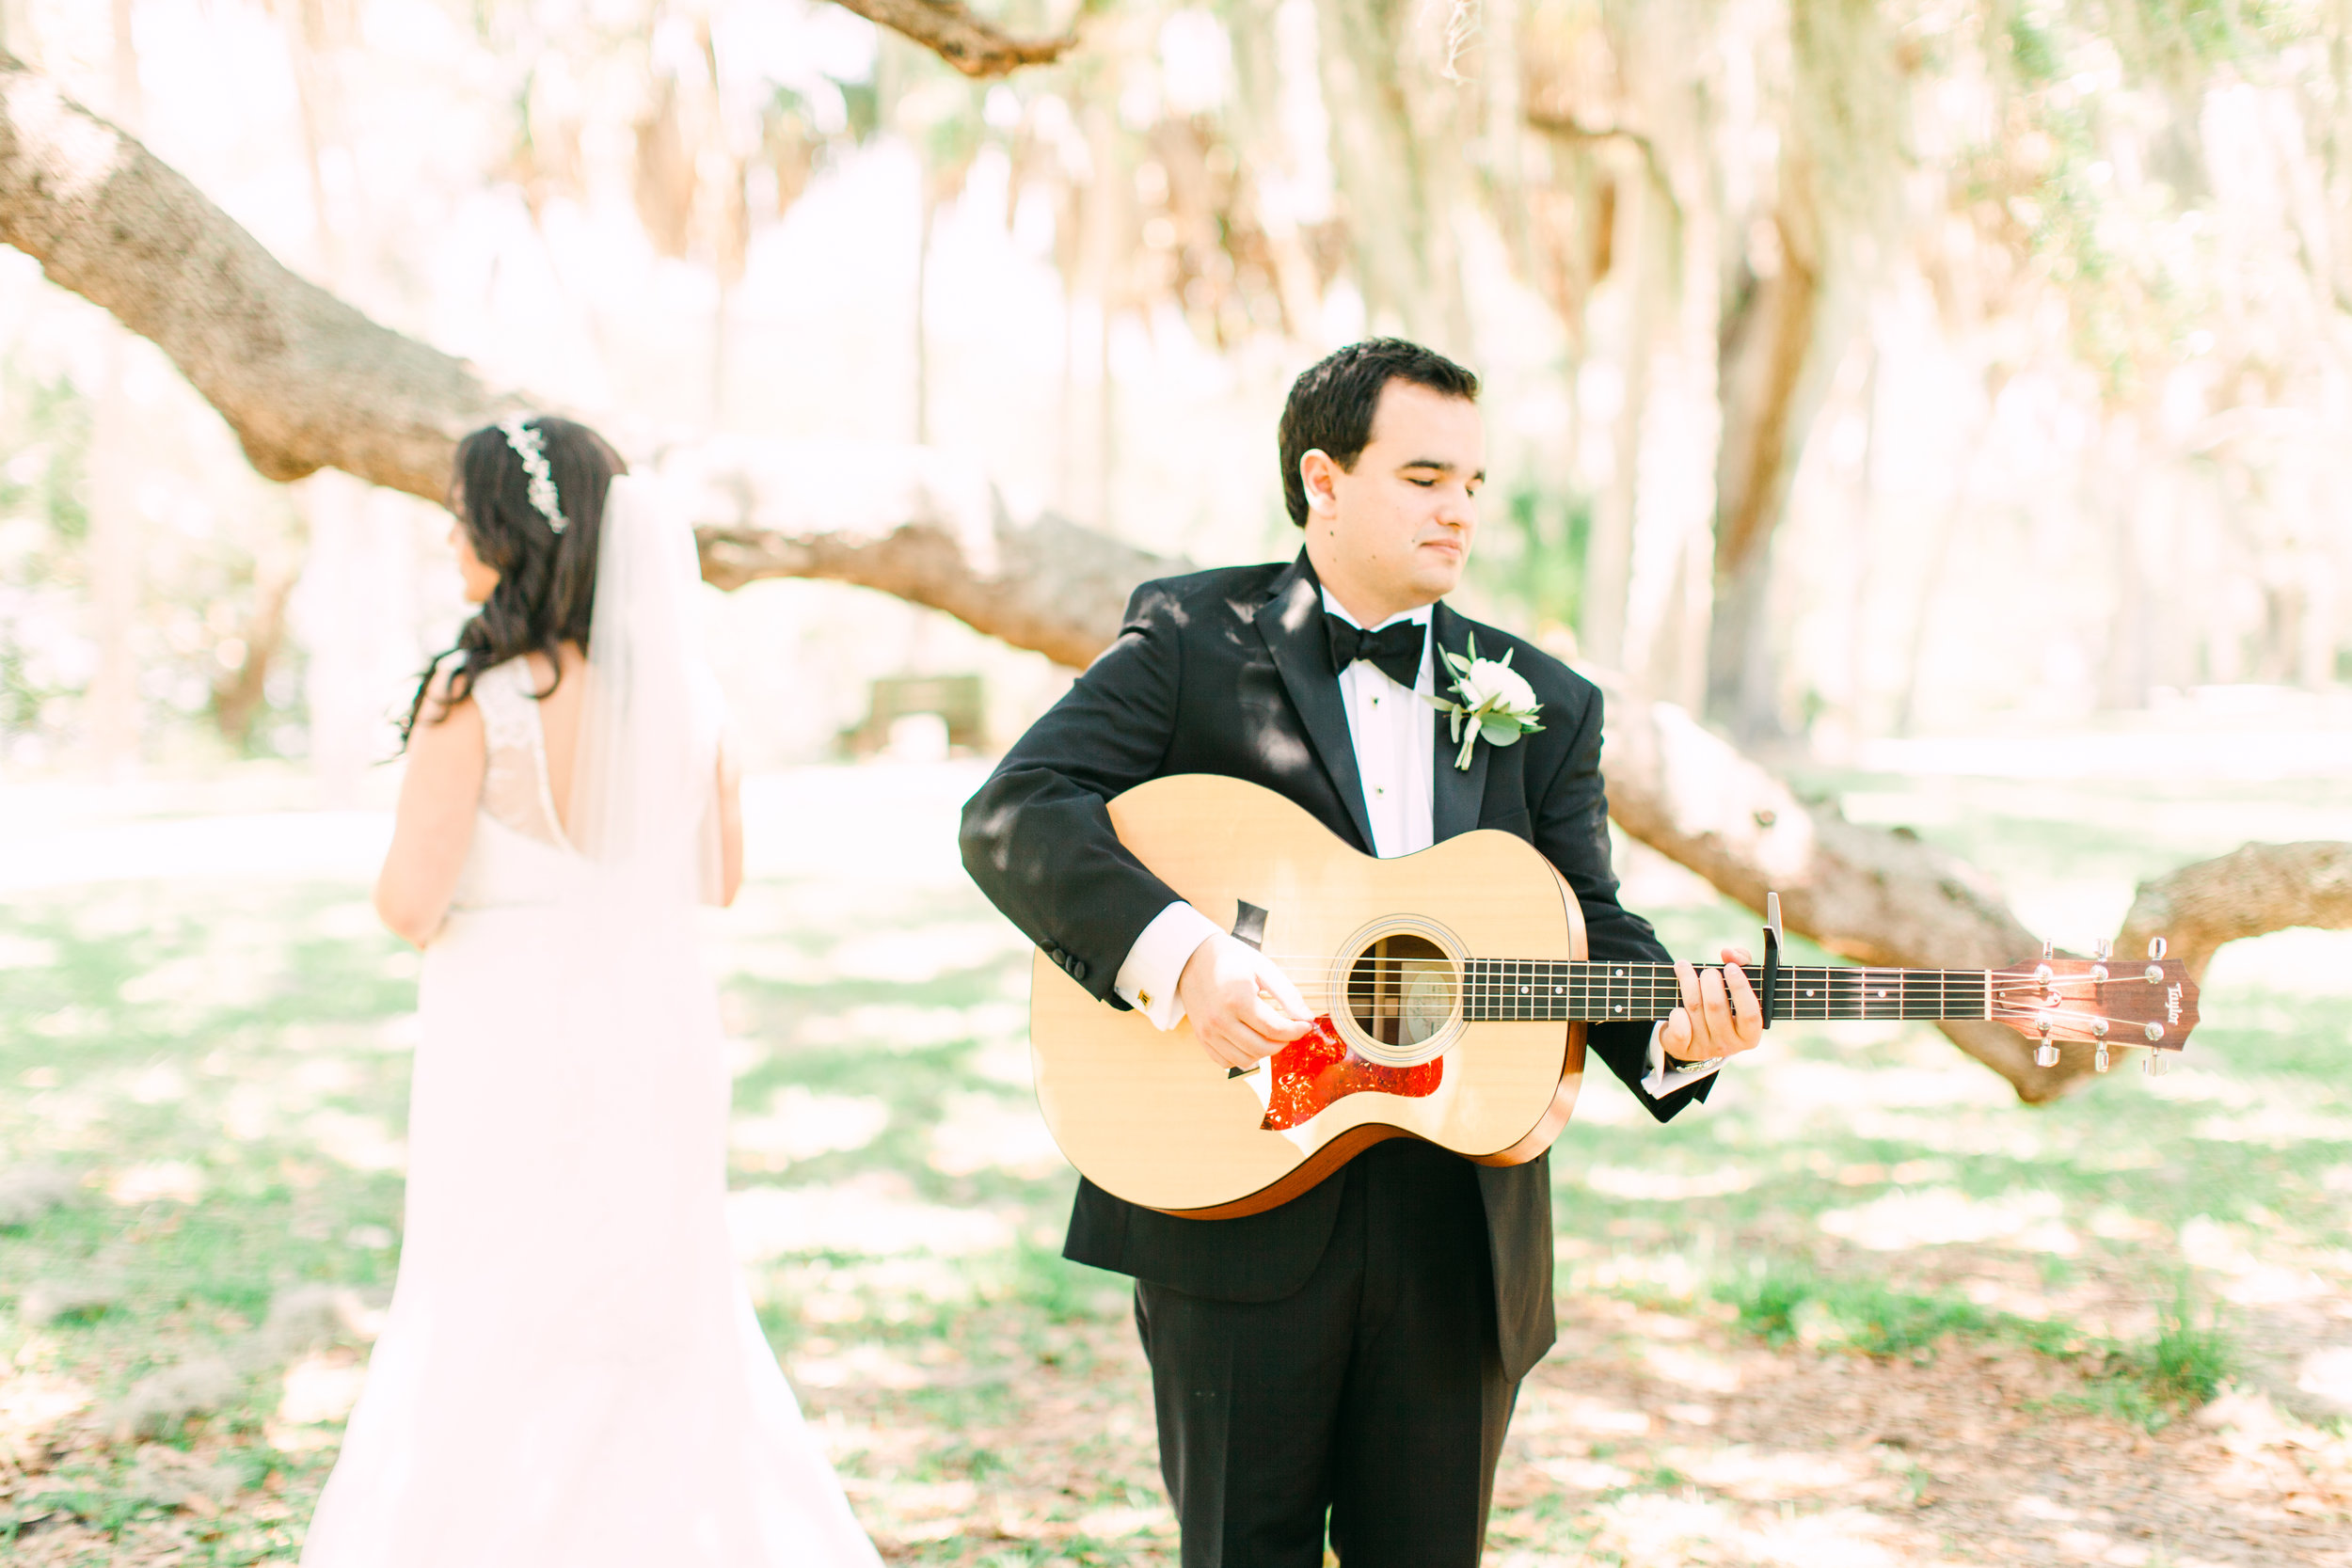 Get Creative - This couple not only did a first look, but the groom played their song right before they looked at each other. After the reveal, they read their vows in private!